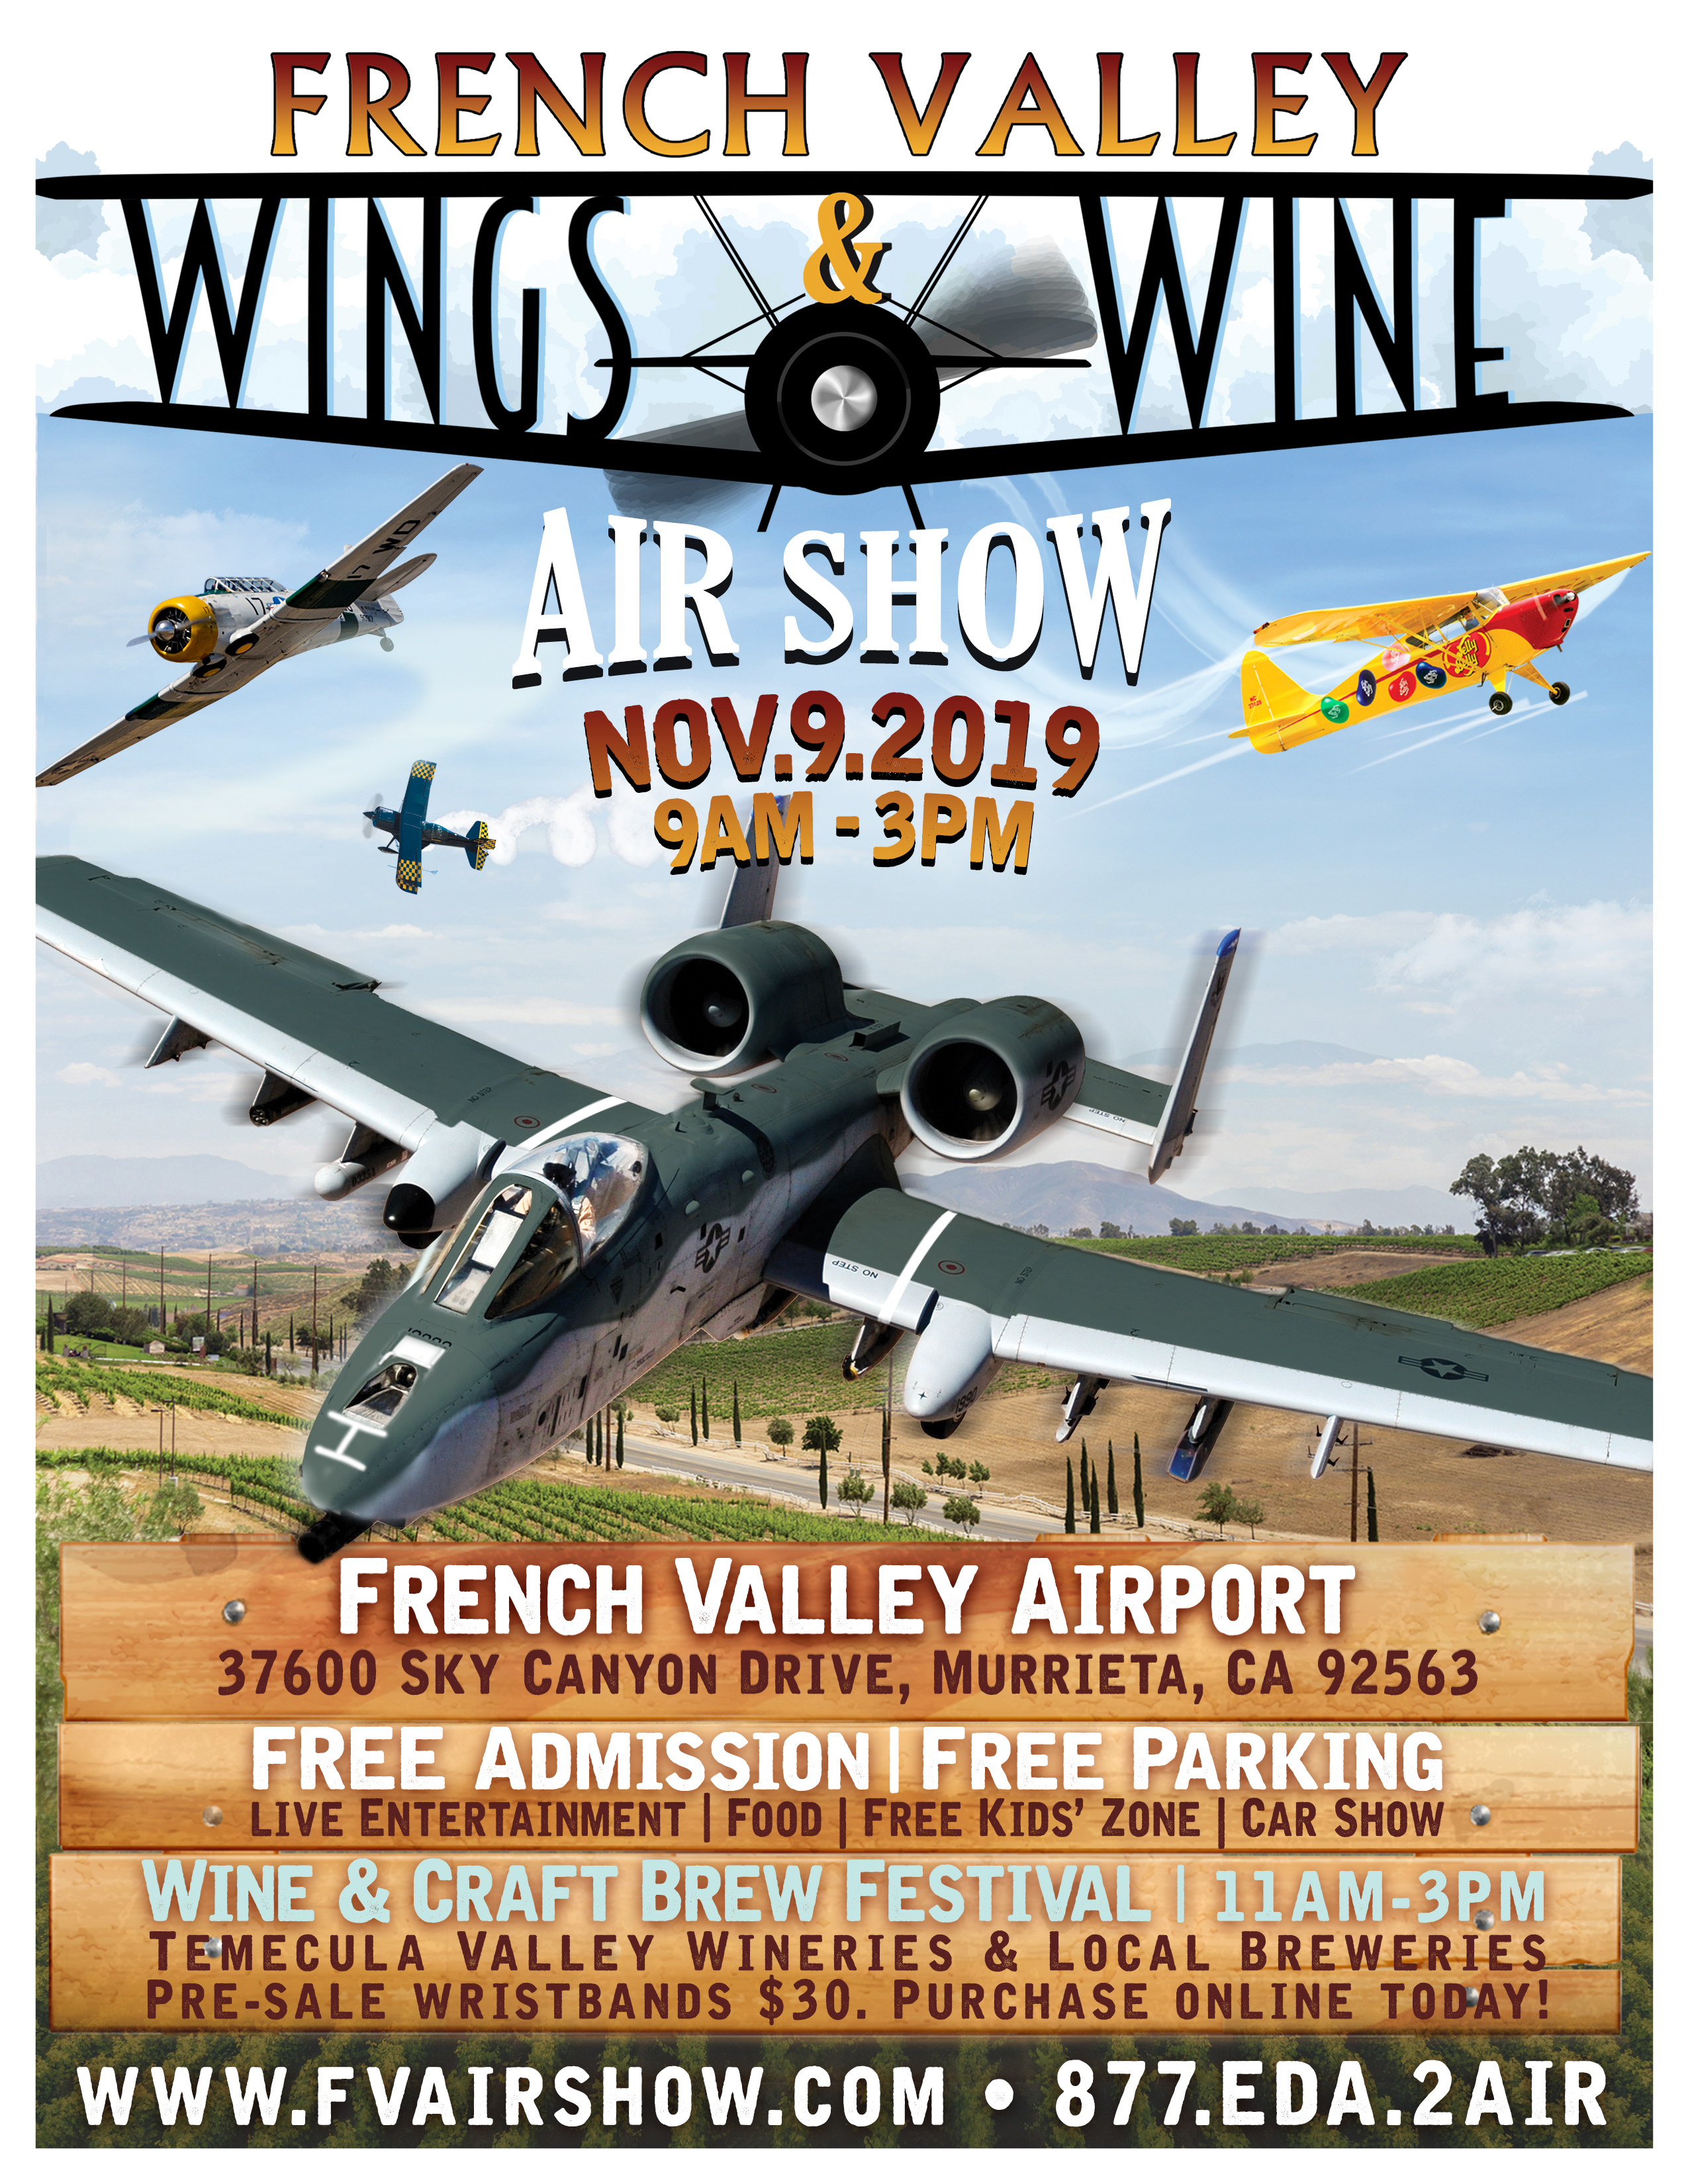 French Valley Wings and Wine Air Show @ French Valley Airport